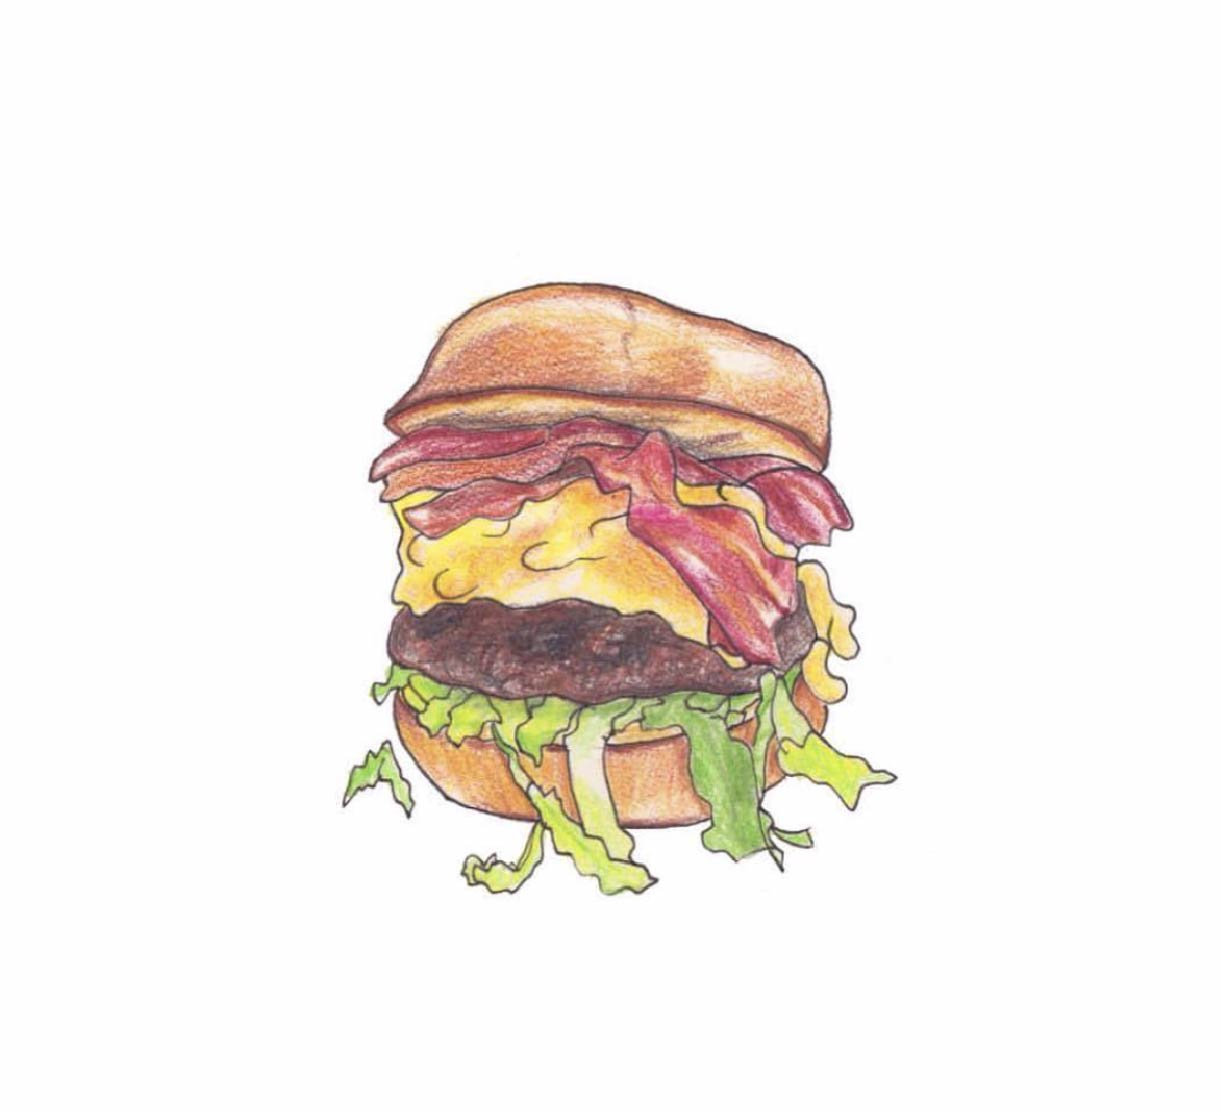 Imperfect Nutritionist_Burger Illustration-21.jpg